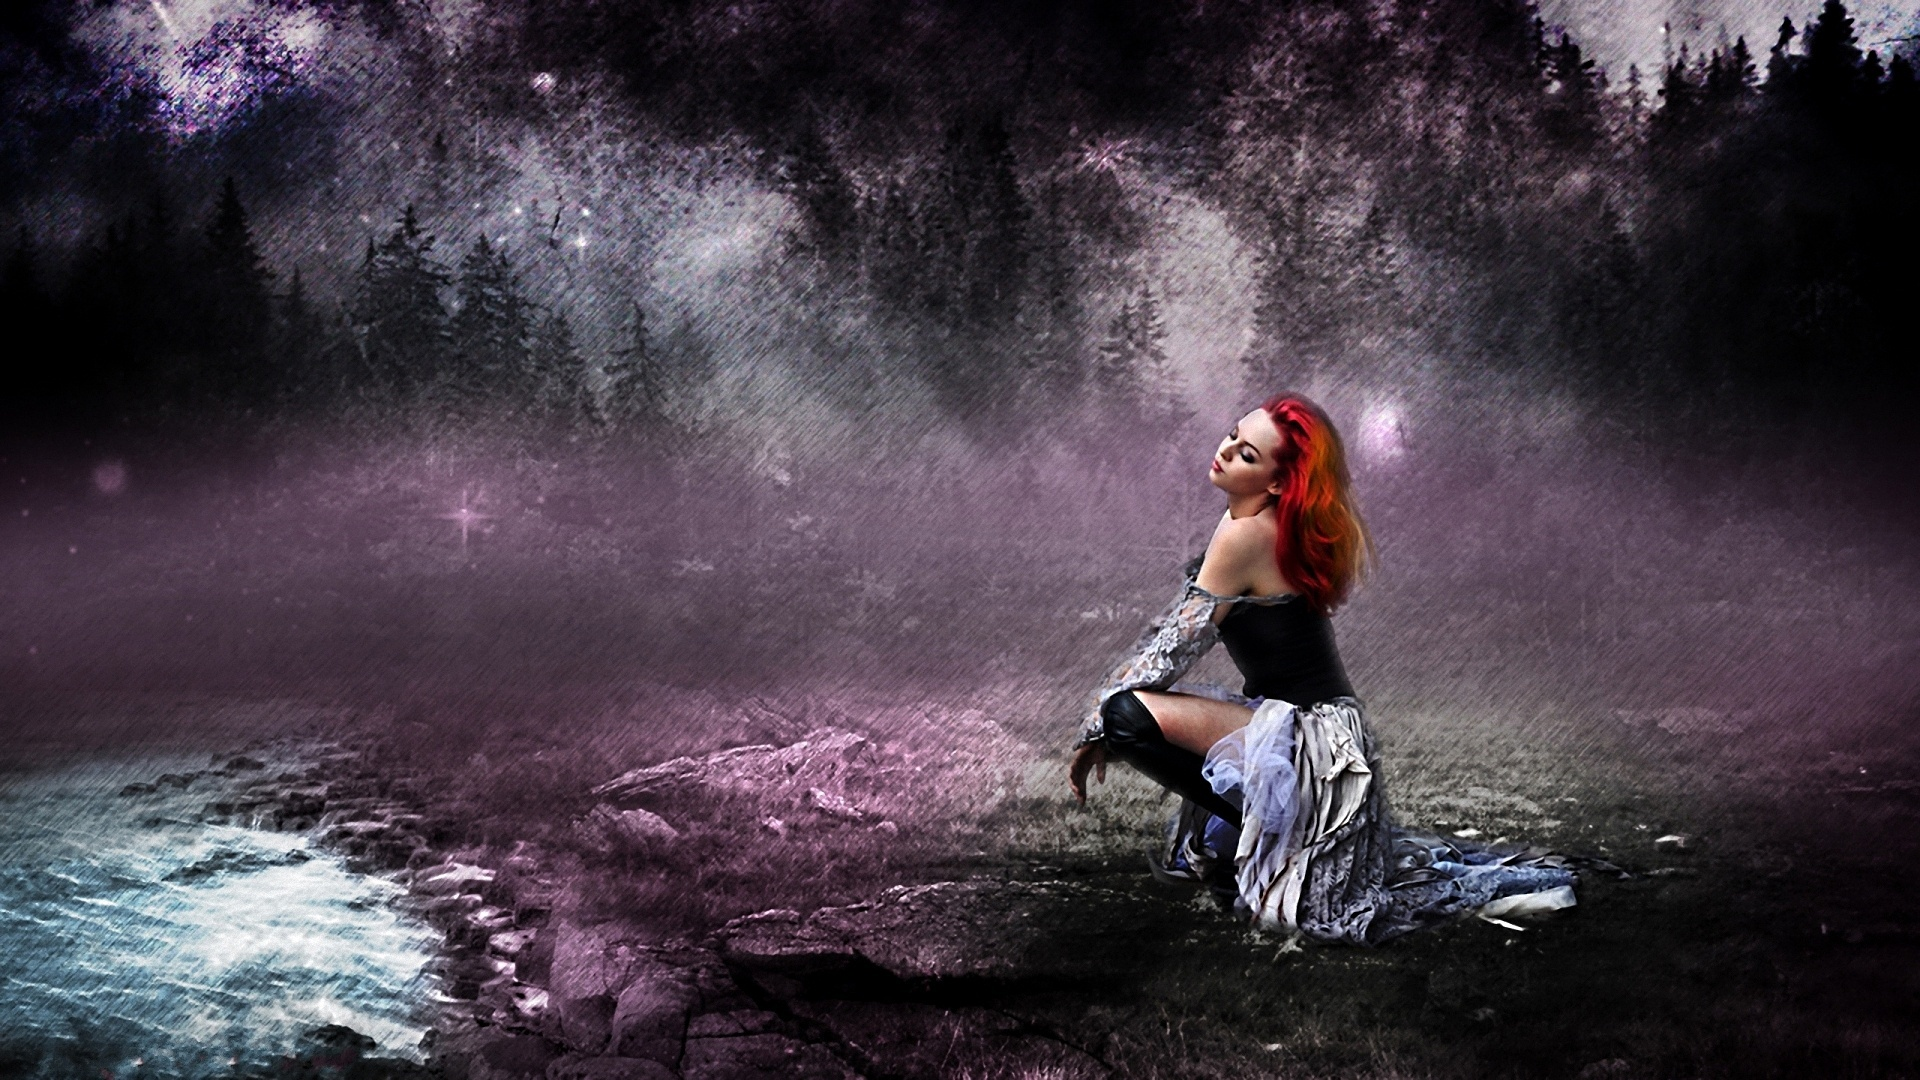 Beautiful Gothic Wallpapers: A Beautiful Women Full HD Wallpaper And Background Image